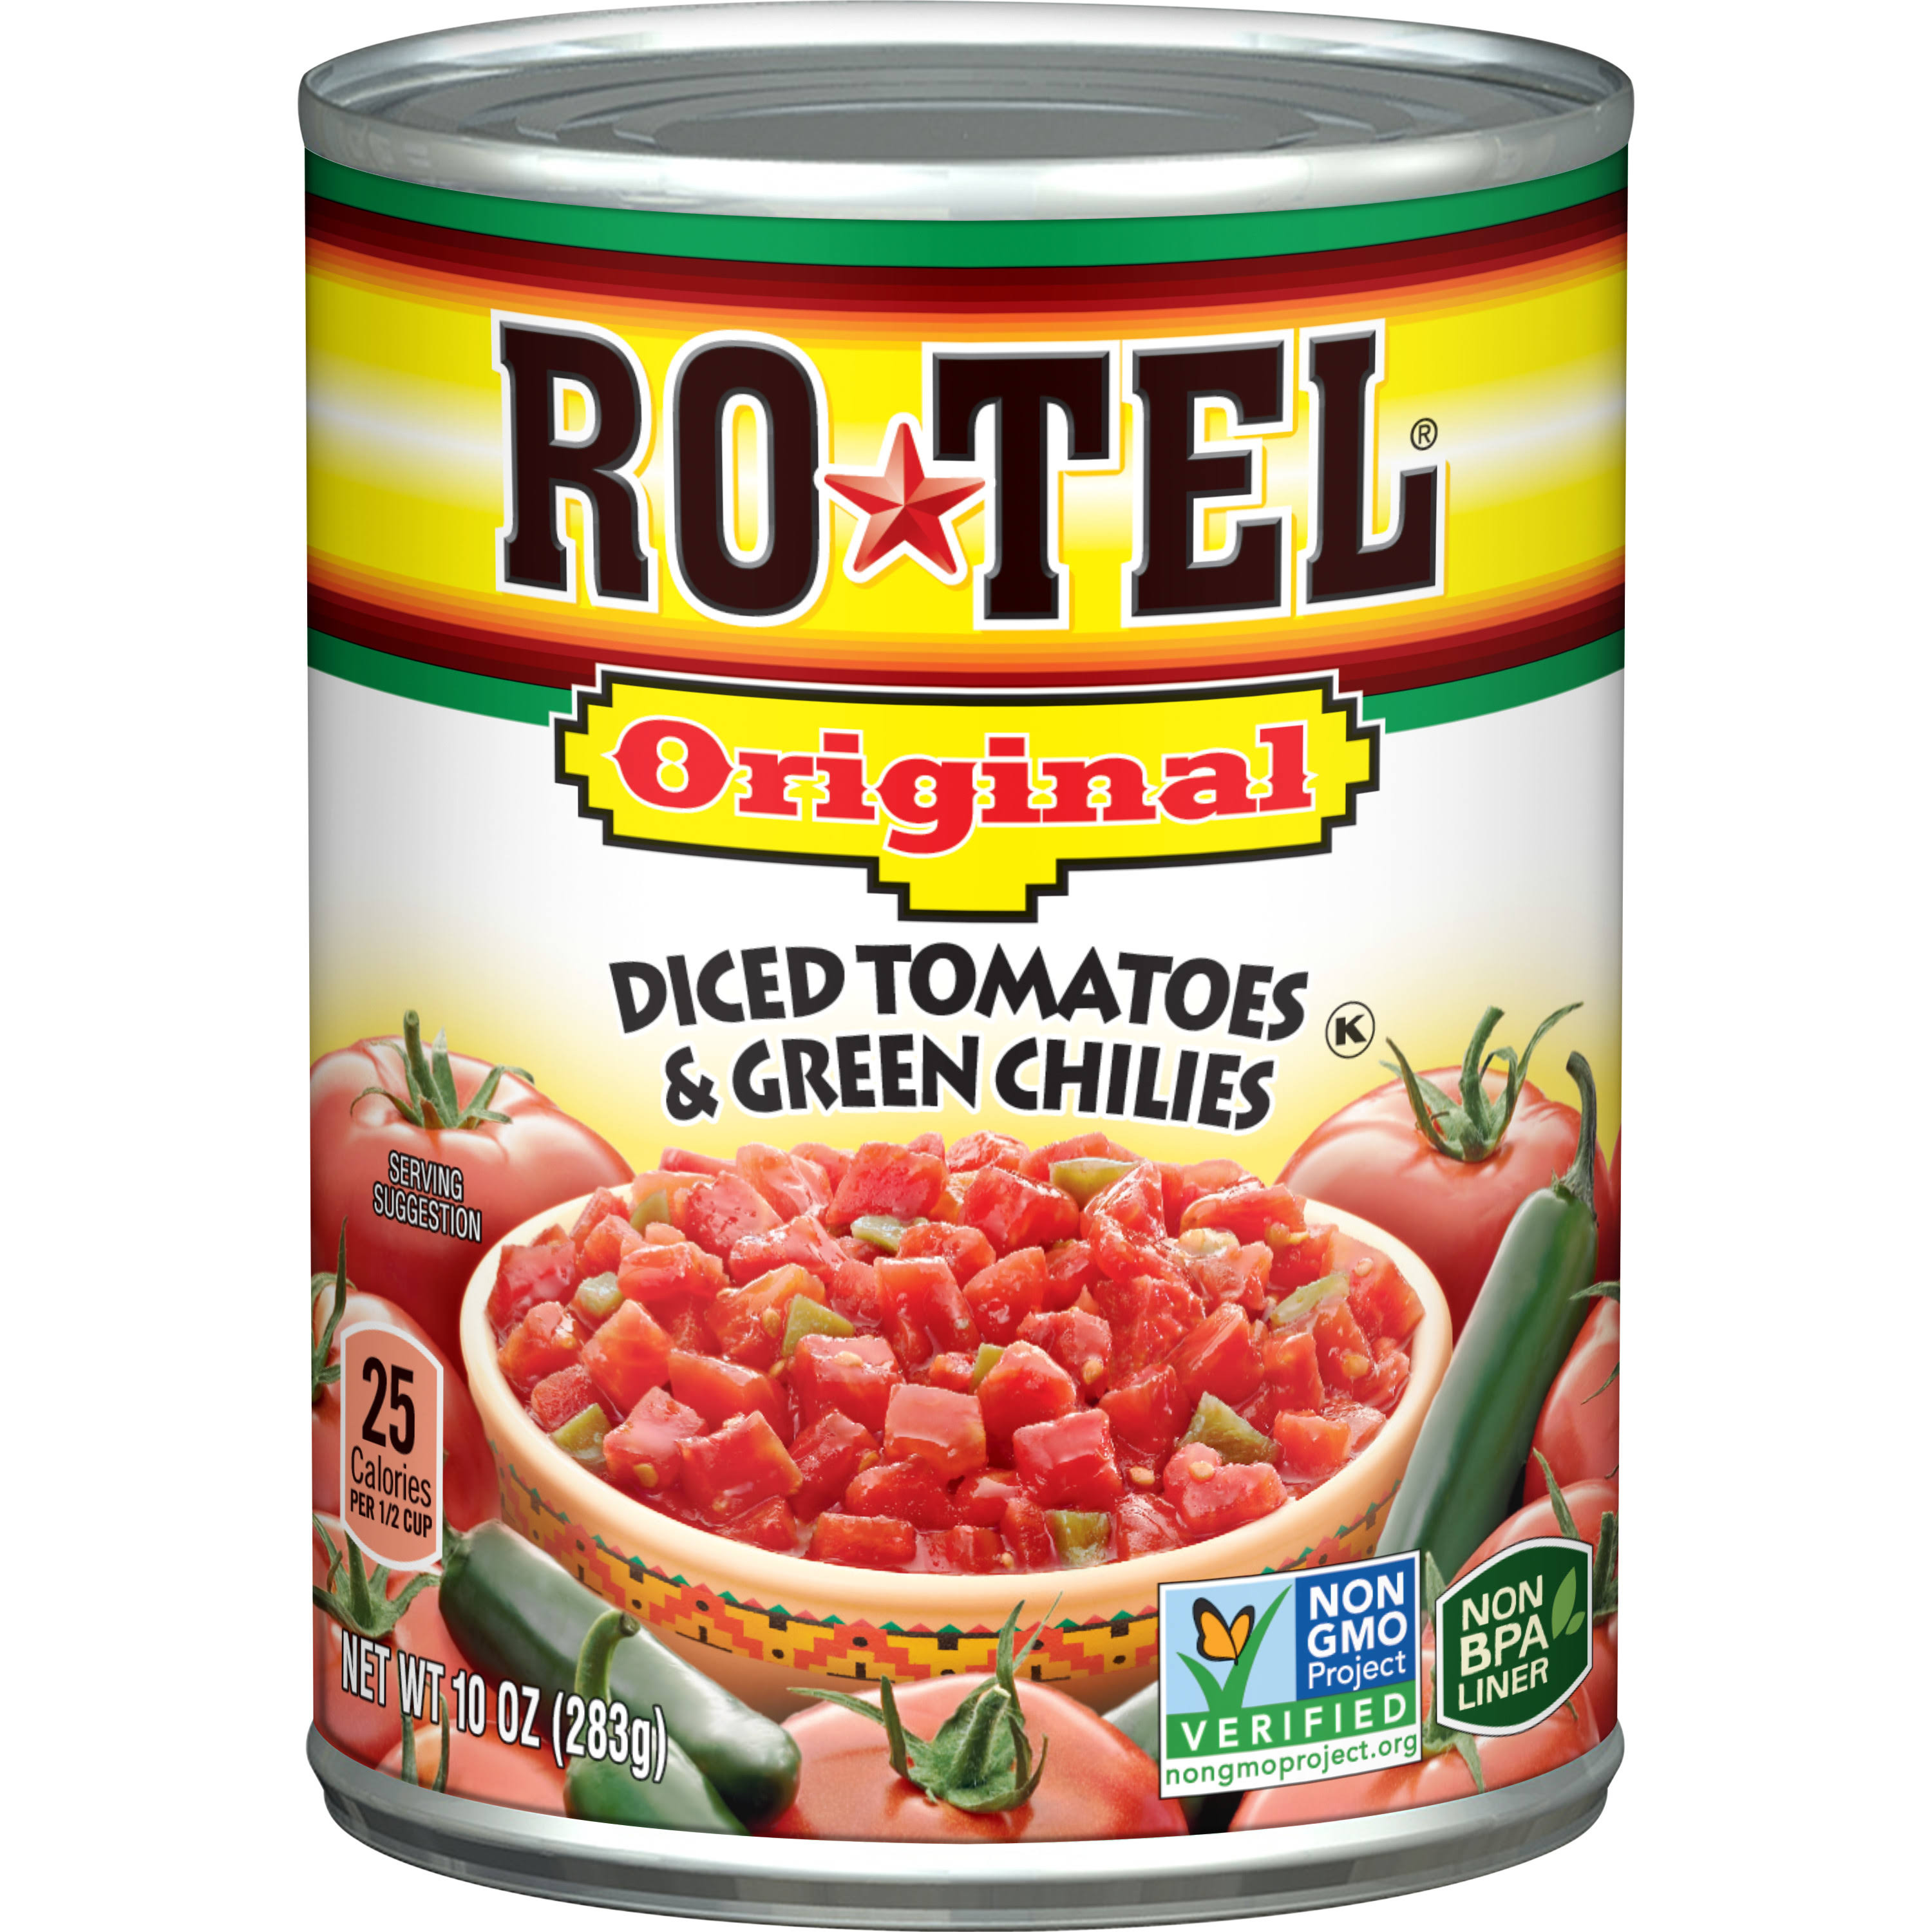 Rotel Original Diced Tomatoes and Green Chilies - 10oz